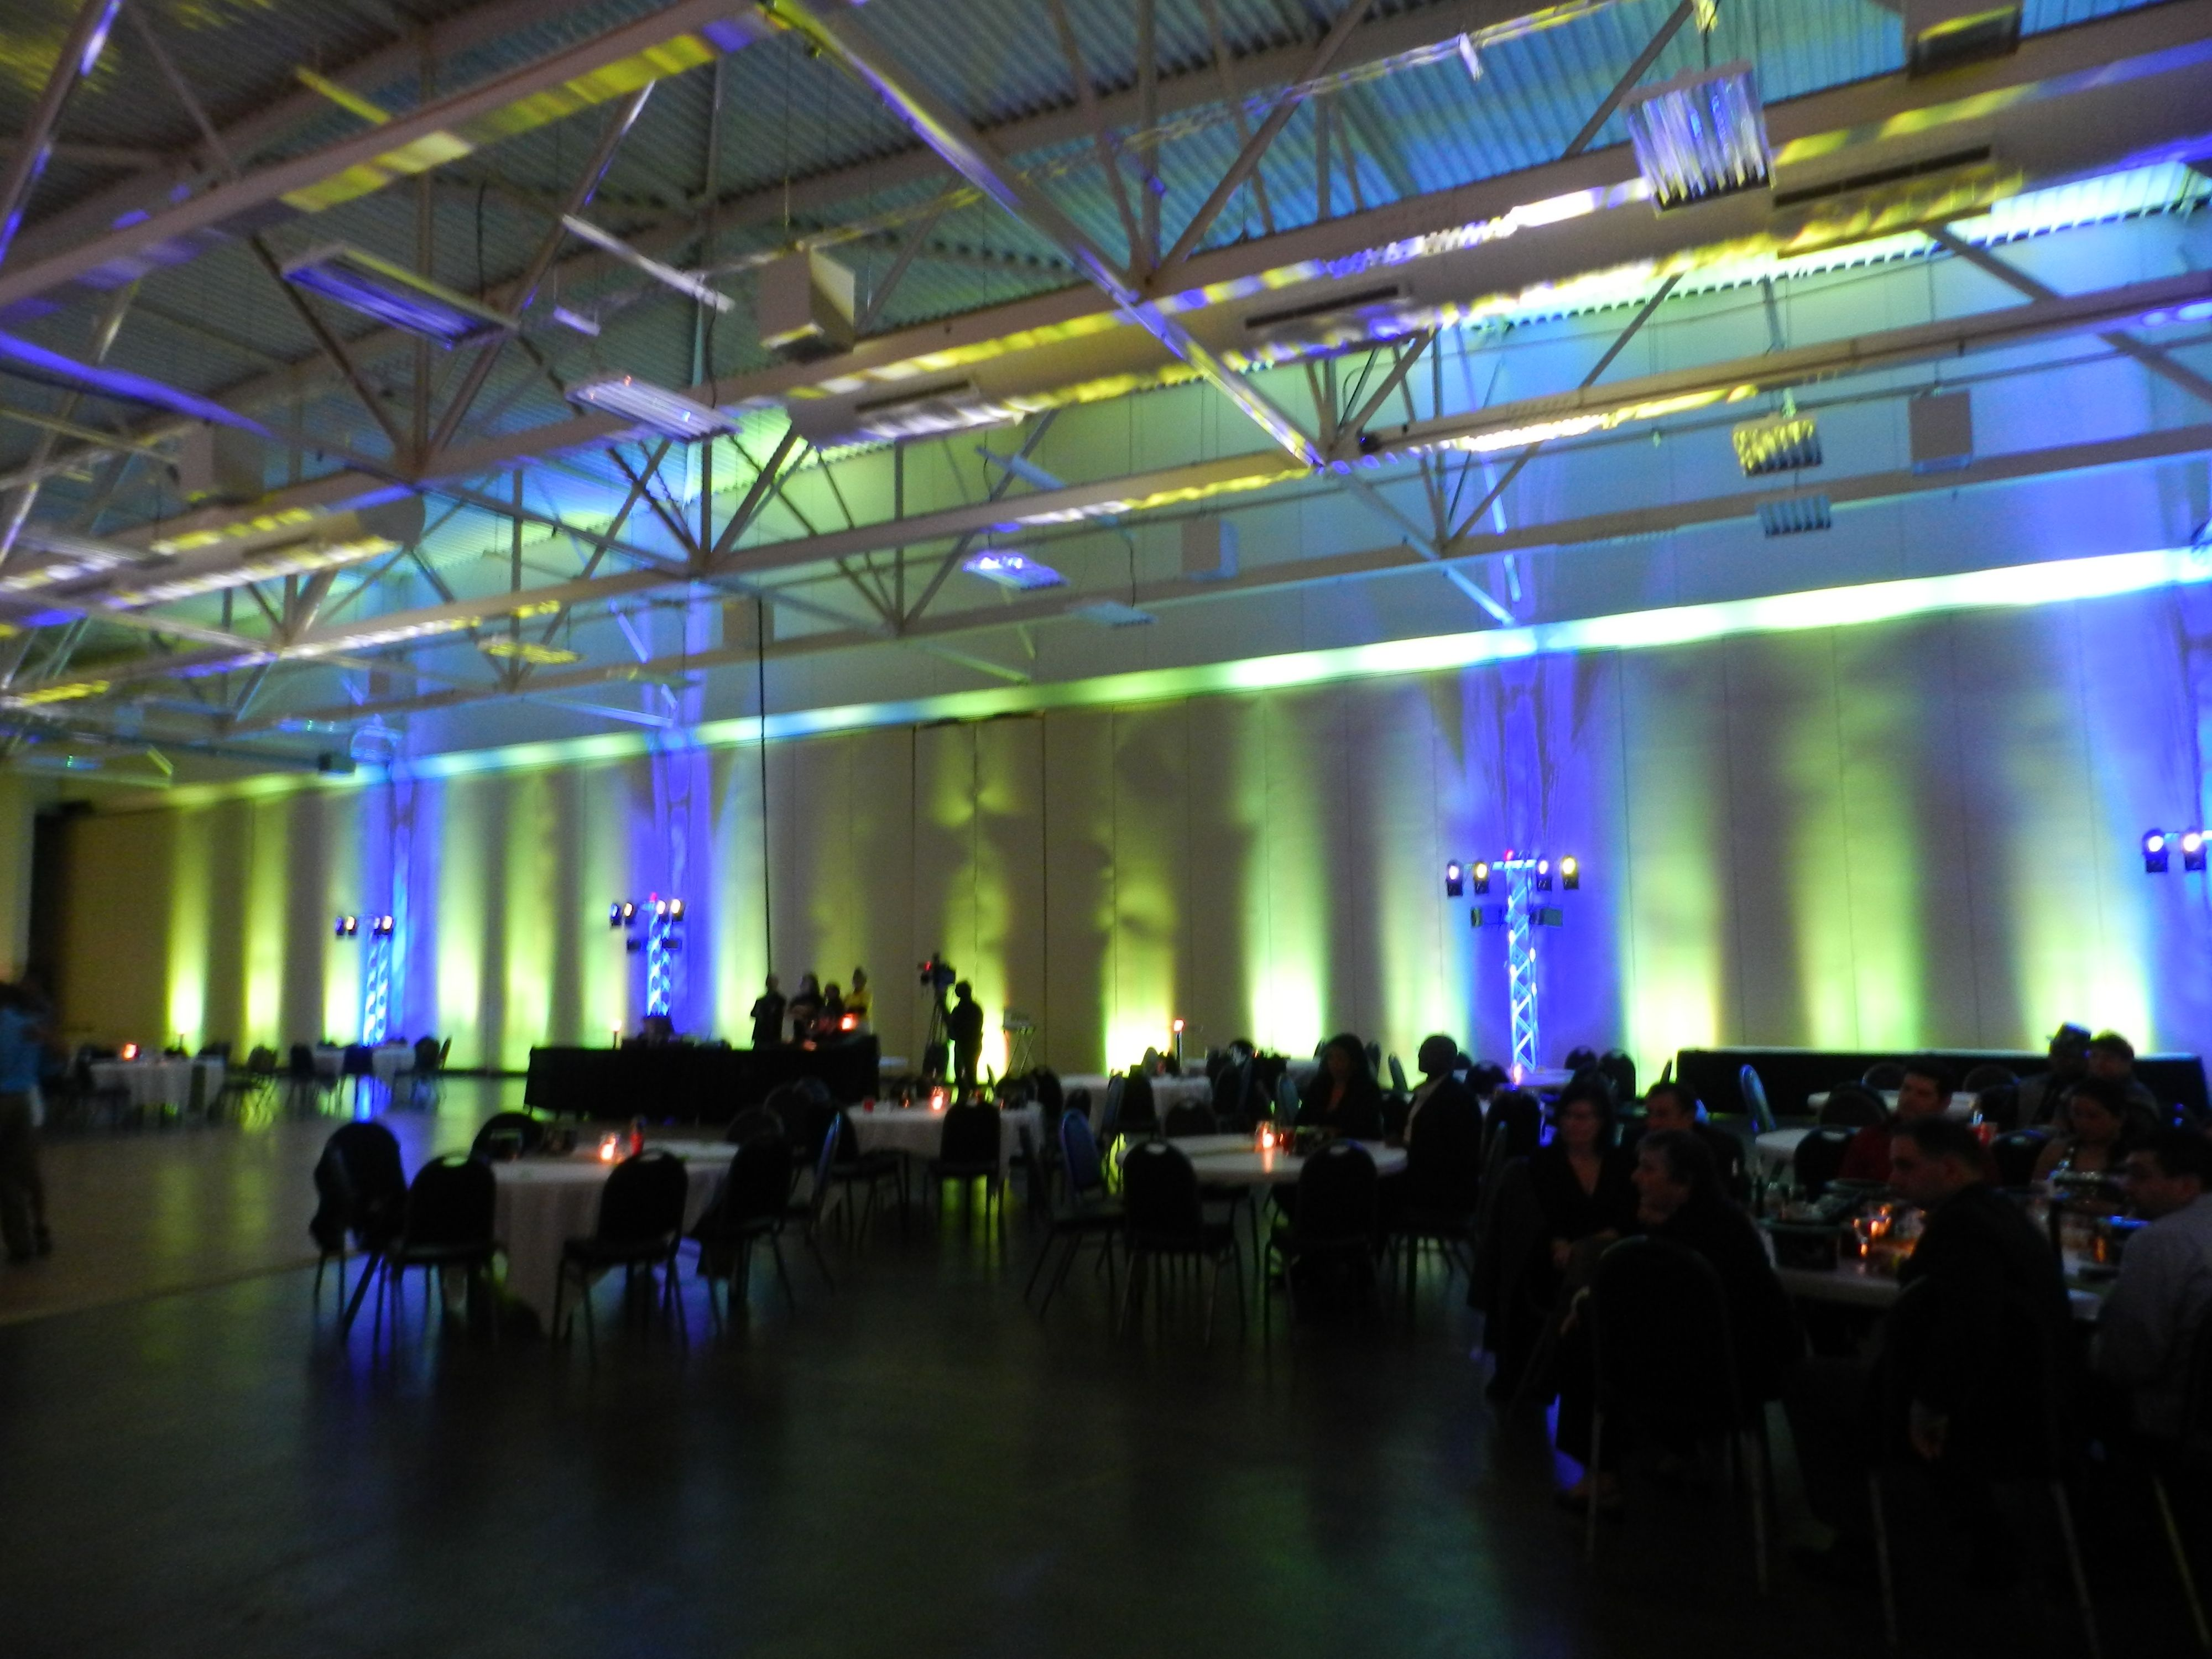 12-31-2011 New Years Eve Concert Lighting - // & 12-31-2011 New Years Eve Concert Lighting - http://www.fivestar ... azcodes.com